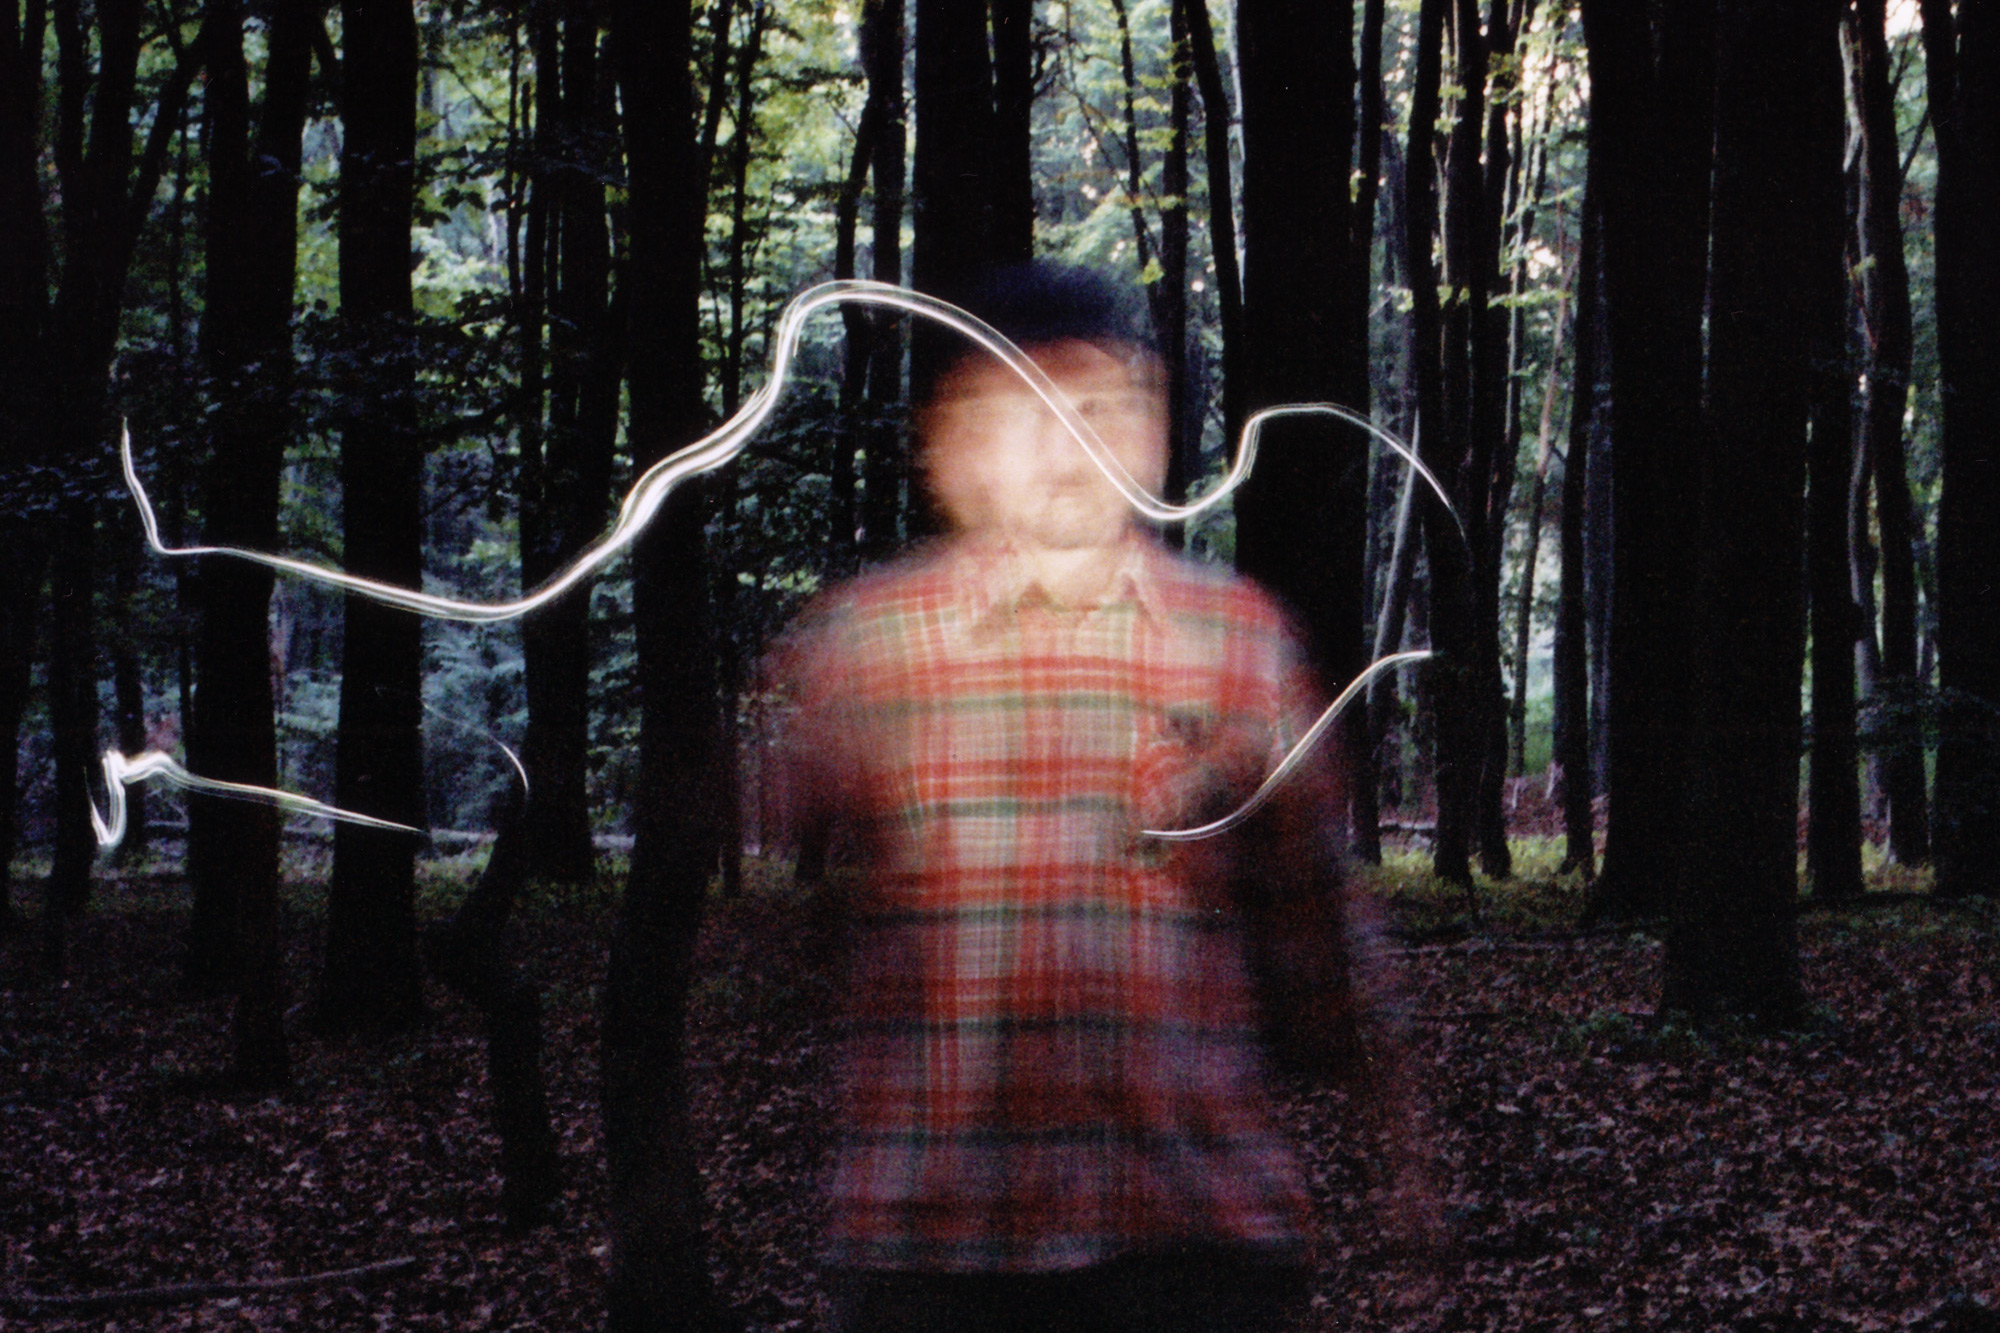 Black To Comm by Renate Nikolaus, motion-blurred photograph of artist stood in forest with light waves